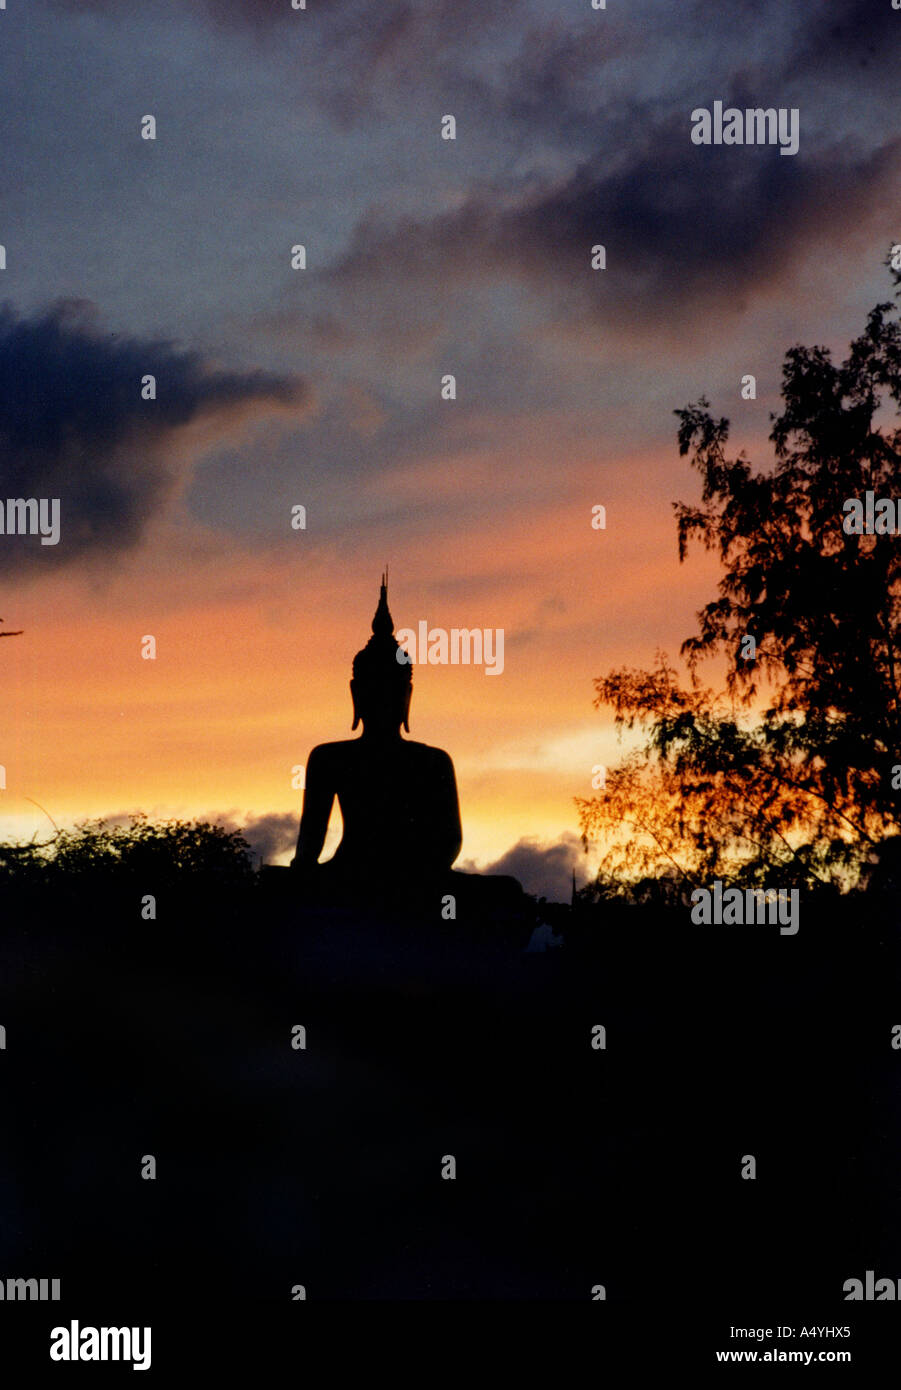 Sculpture of Buddha at afterglow - Stock Image